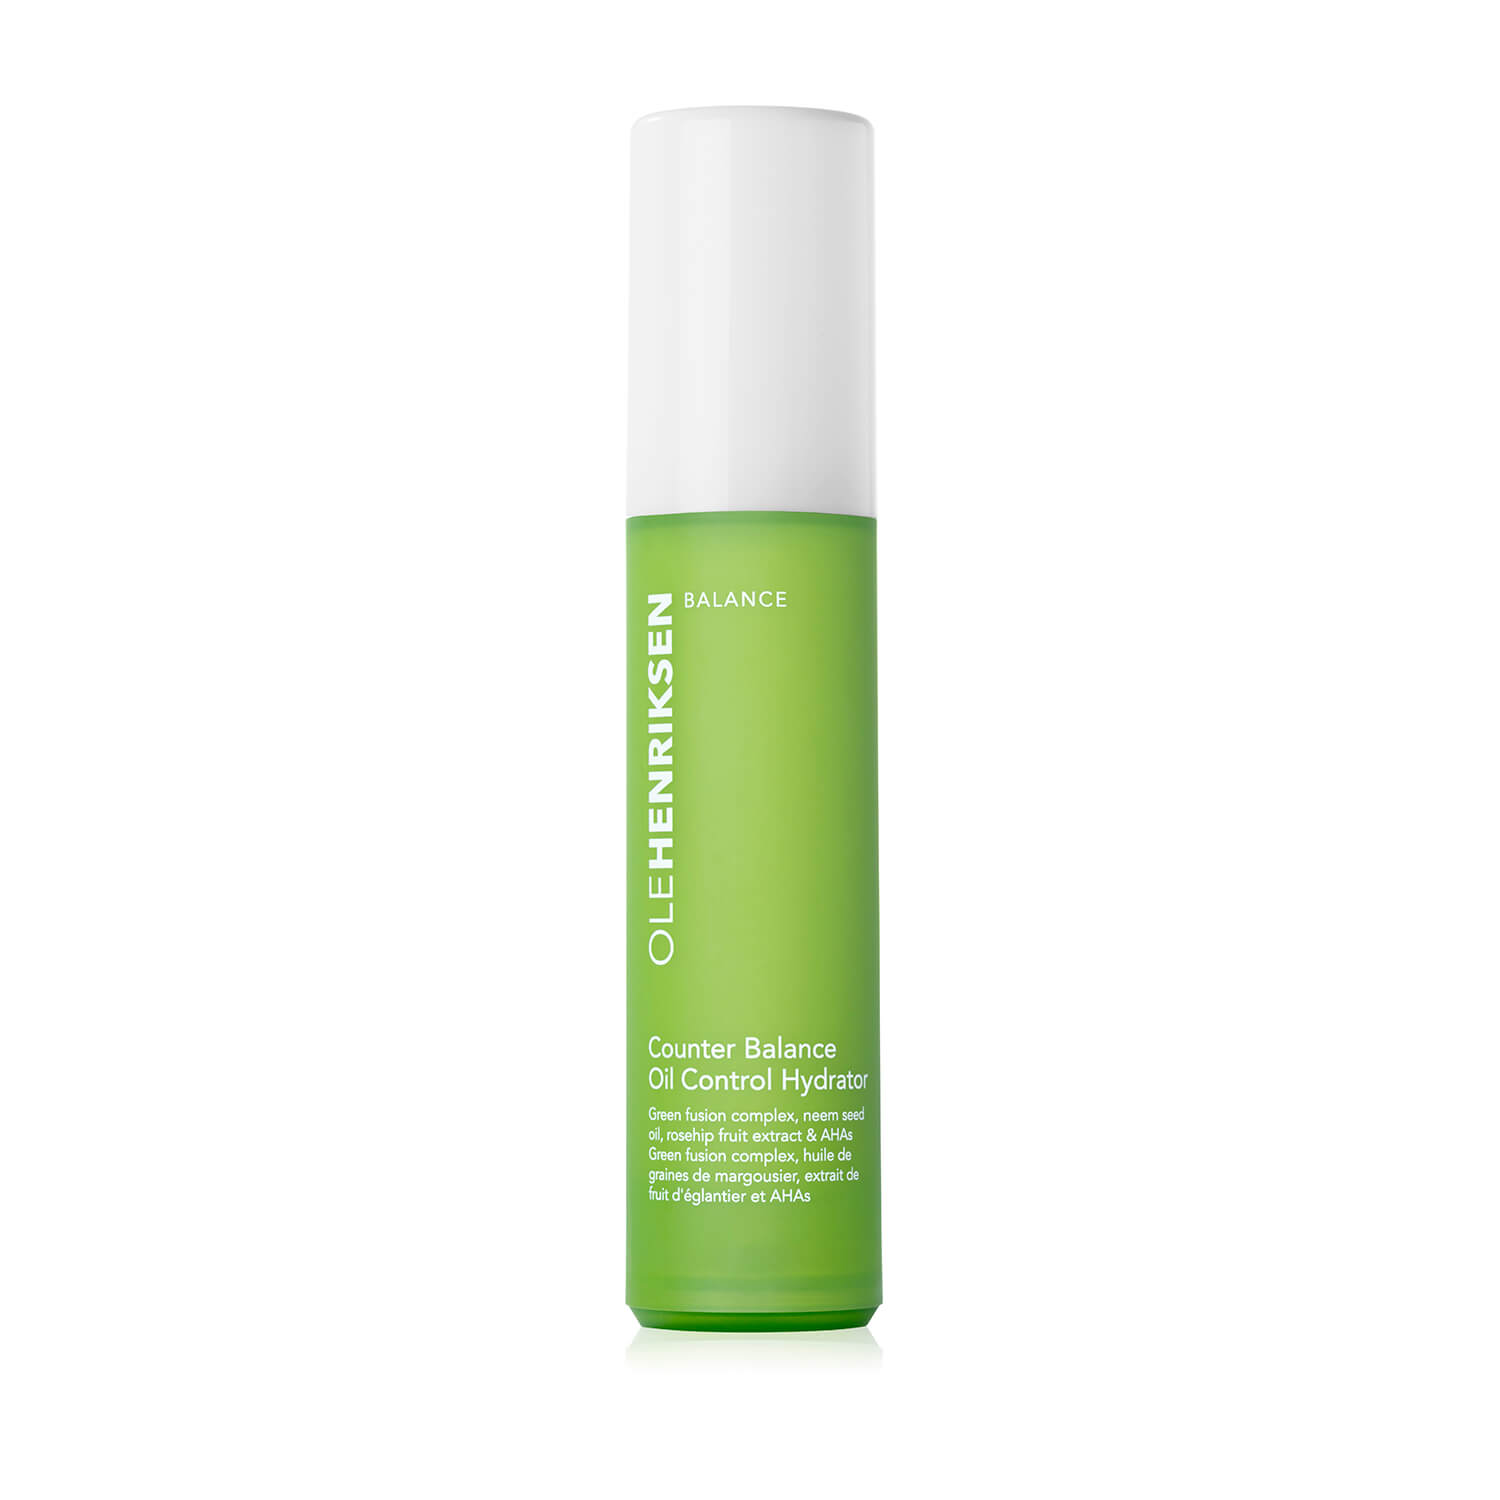 counter balance™ oil control hydrator